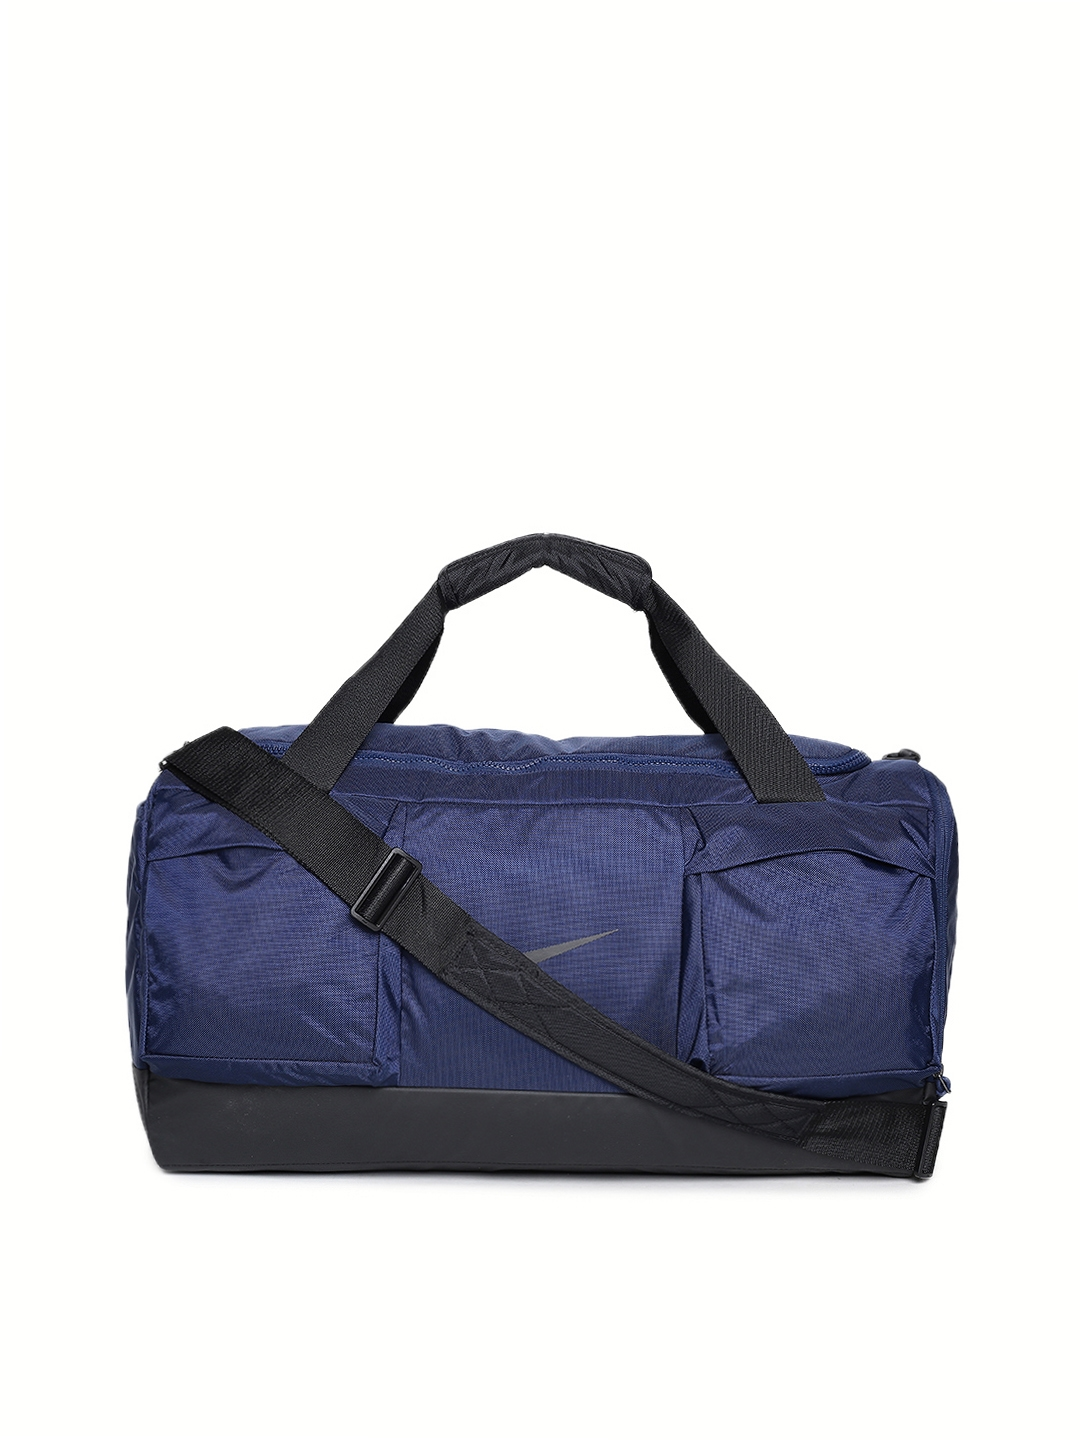 de5021a69b Buy Nike Men Navy Blue Vapor Power Duffel Bag - Duffel Bag for Men ...